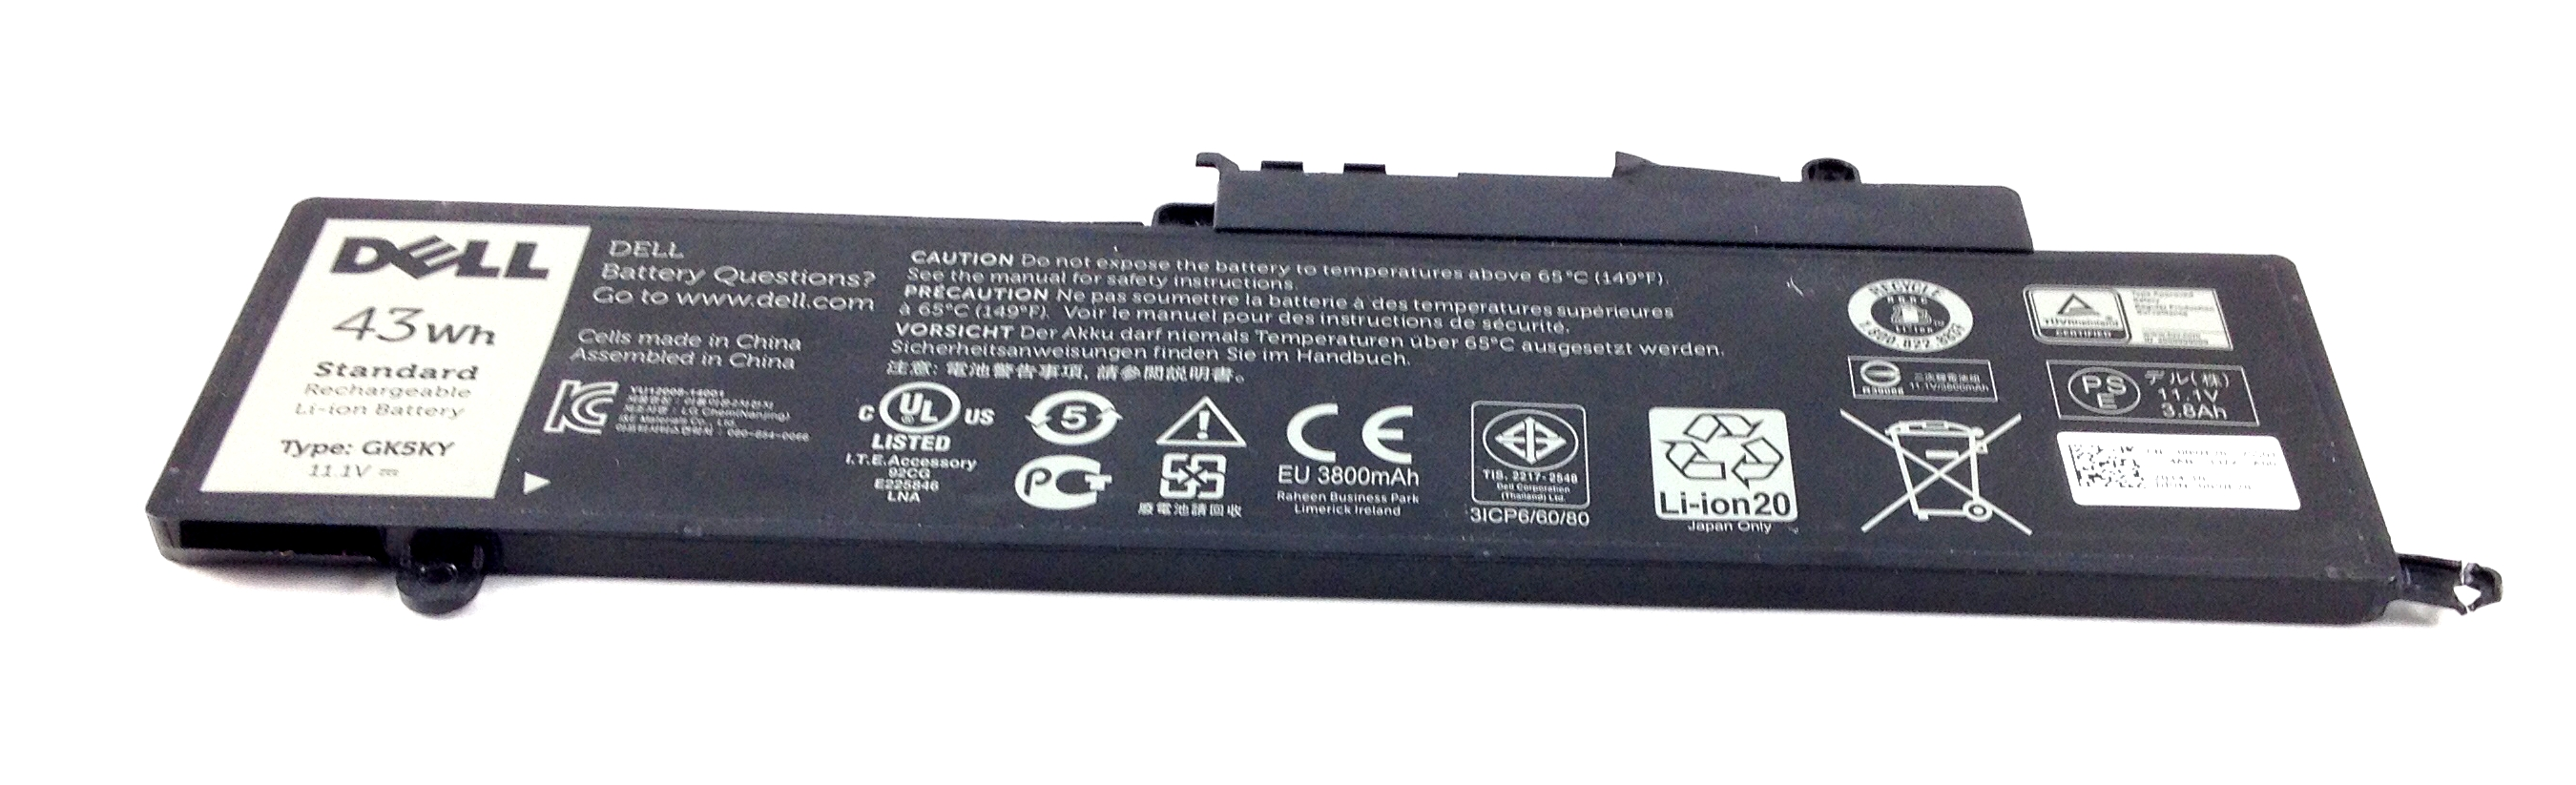 43Wh Battery For Dell Inspiron 13 7347 Series (0WF28)